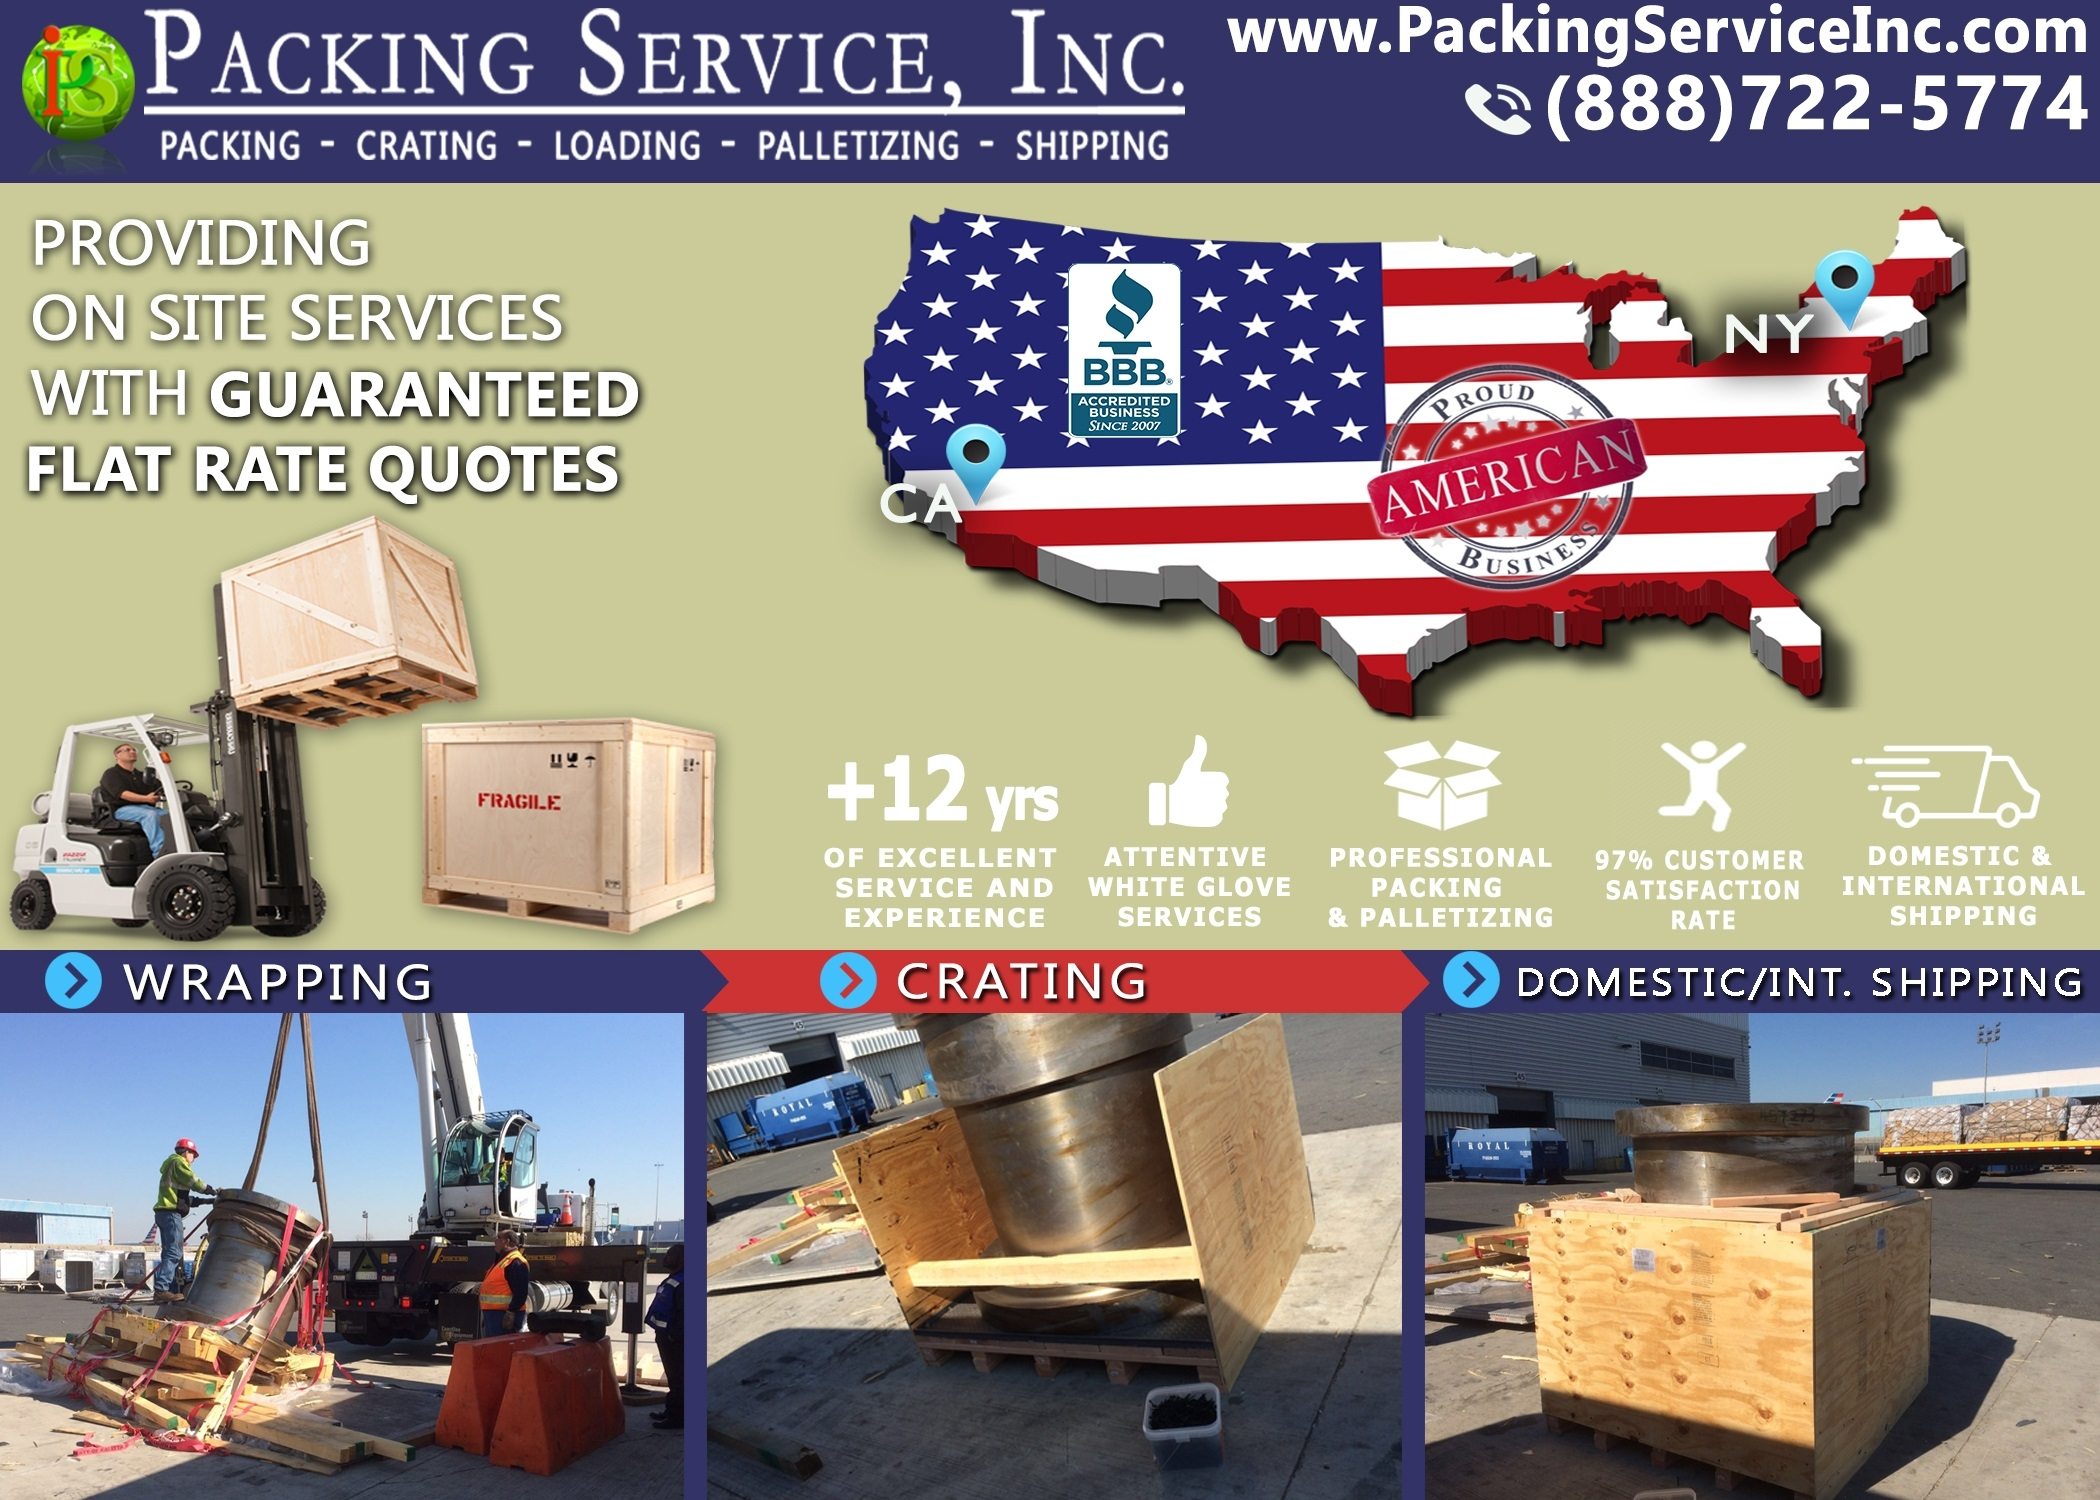 Packing Service, Inc. image 0